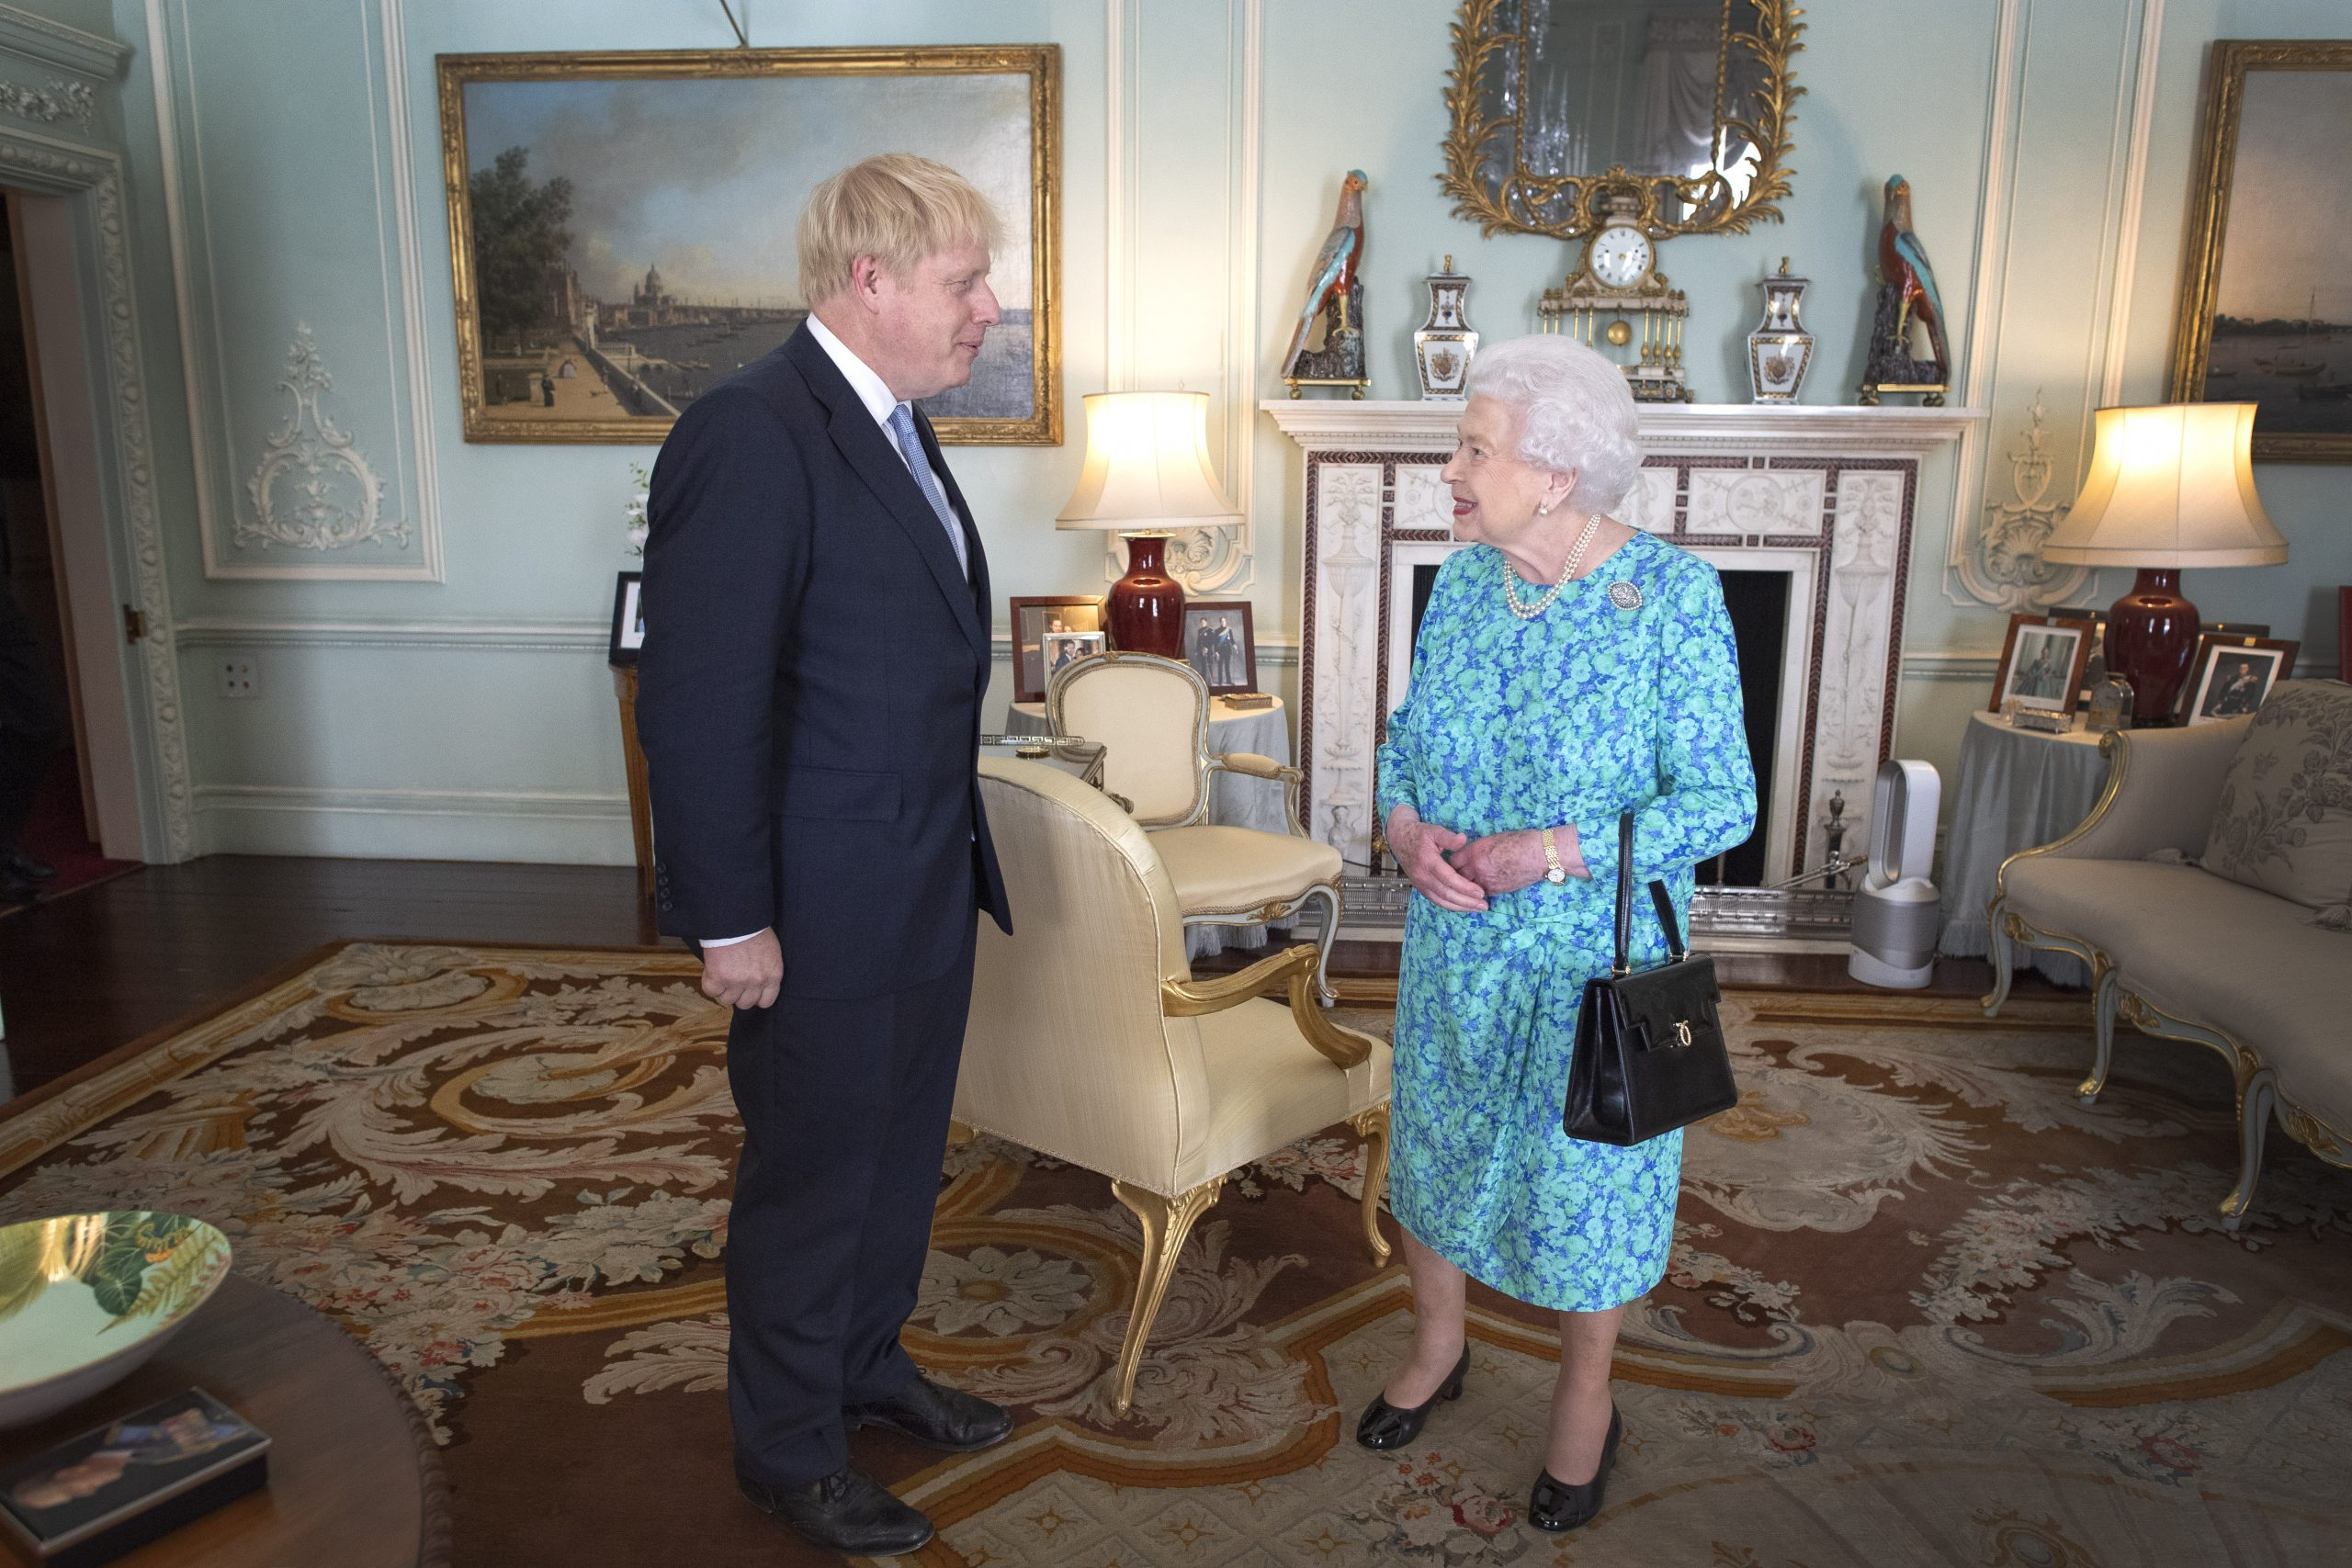 Meghan and Harry photo behind the Queen and Boris Johnson